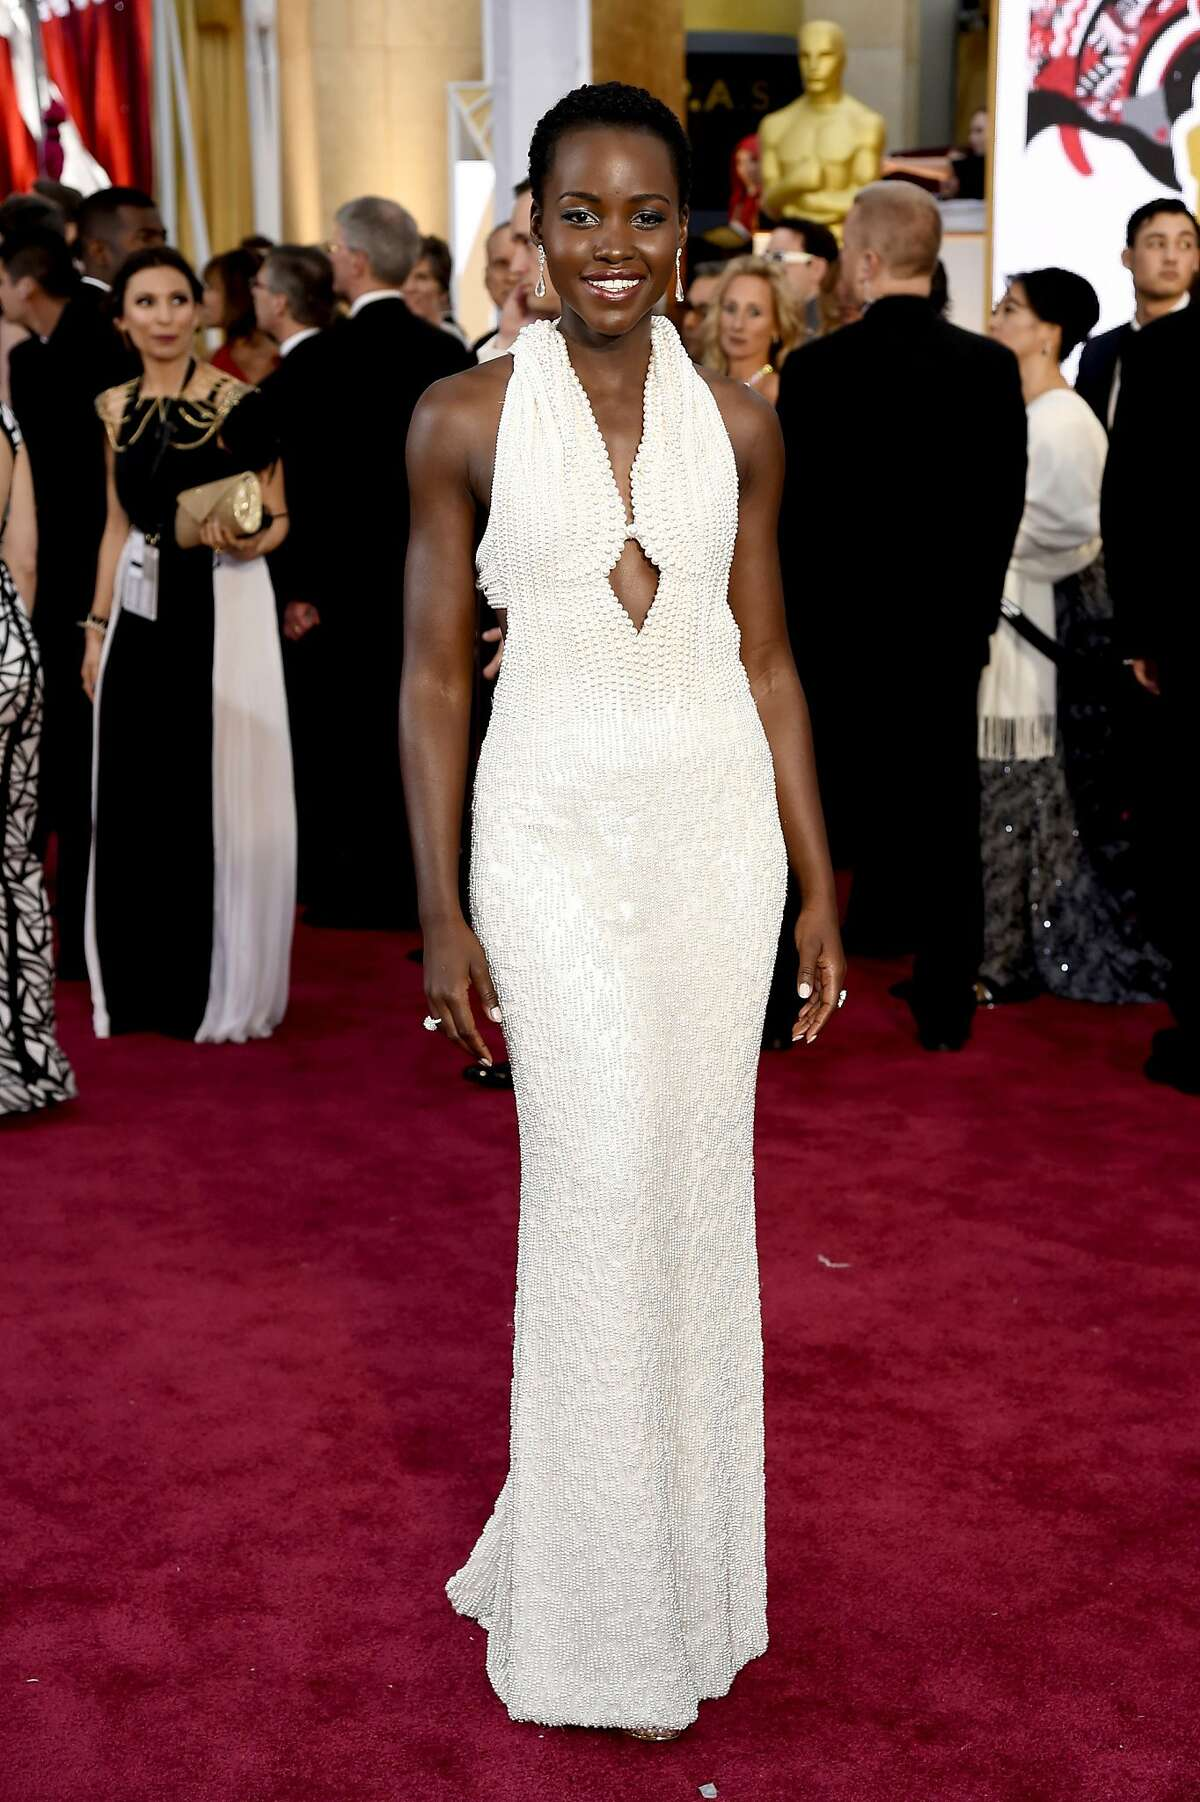 9. CALVIN KLEIN: $150,000 Lupita Nyong'o arrived at the Oscars wearing a dress made of roughly more than 6,000 pearls. It was later stolen from her dressing room, only to be returned days later.